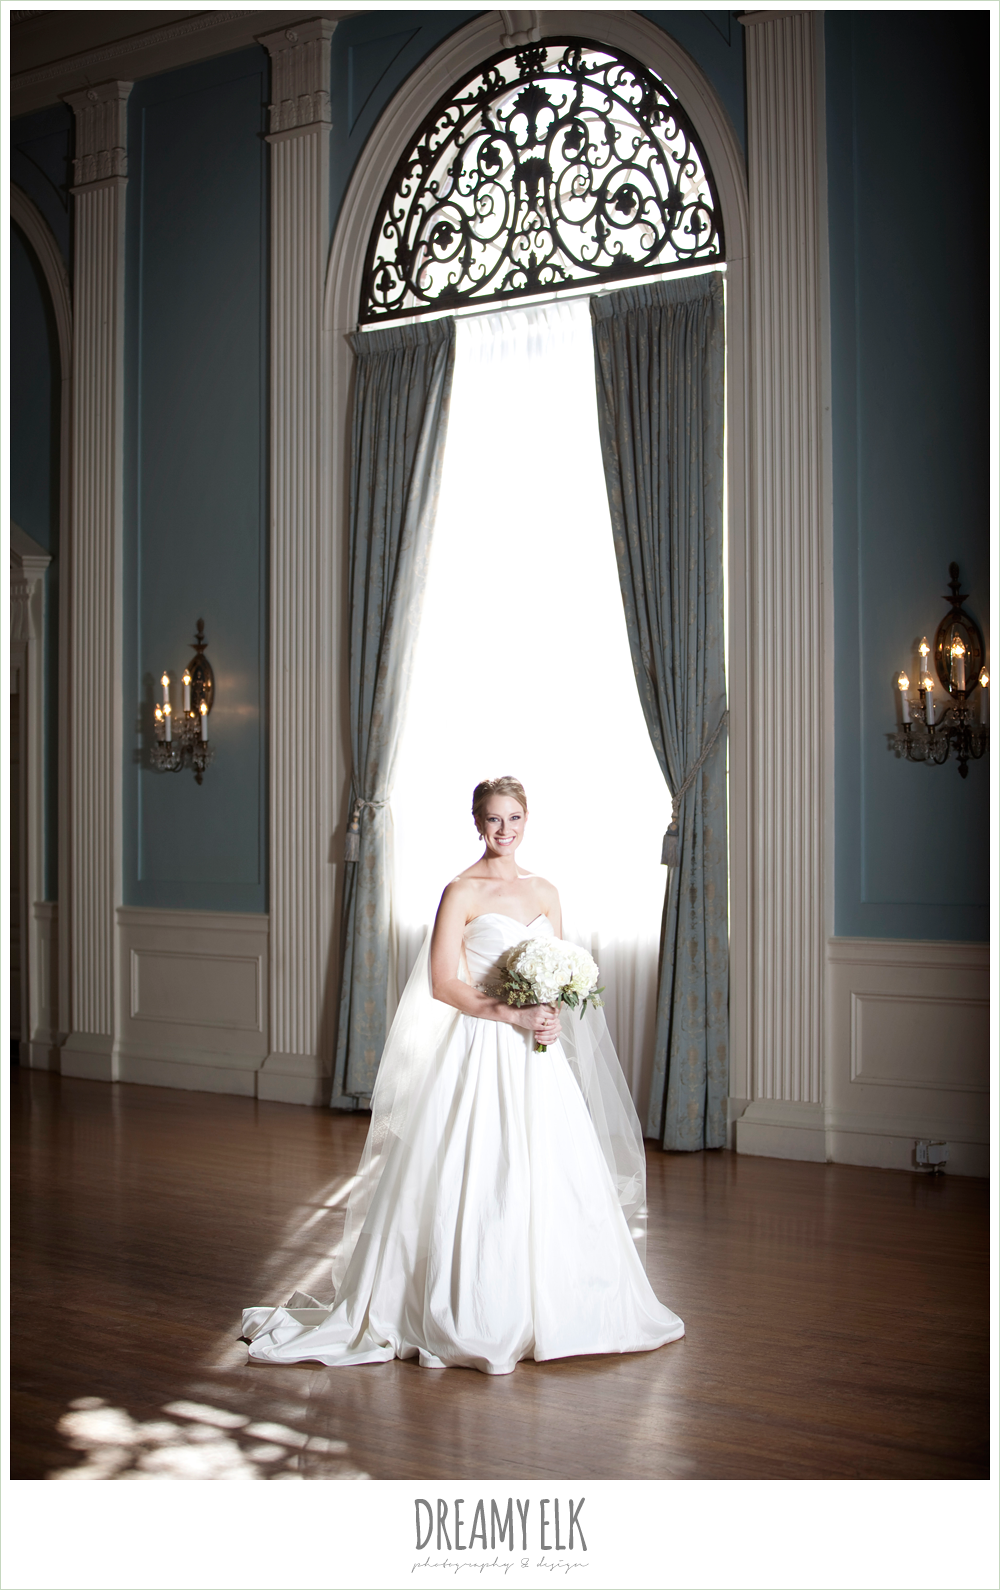 bride standing in window, cathedral length veil, indoor bridal photo, dreamy elk photography and design